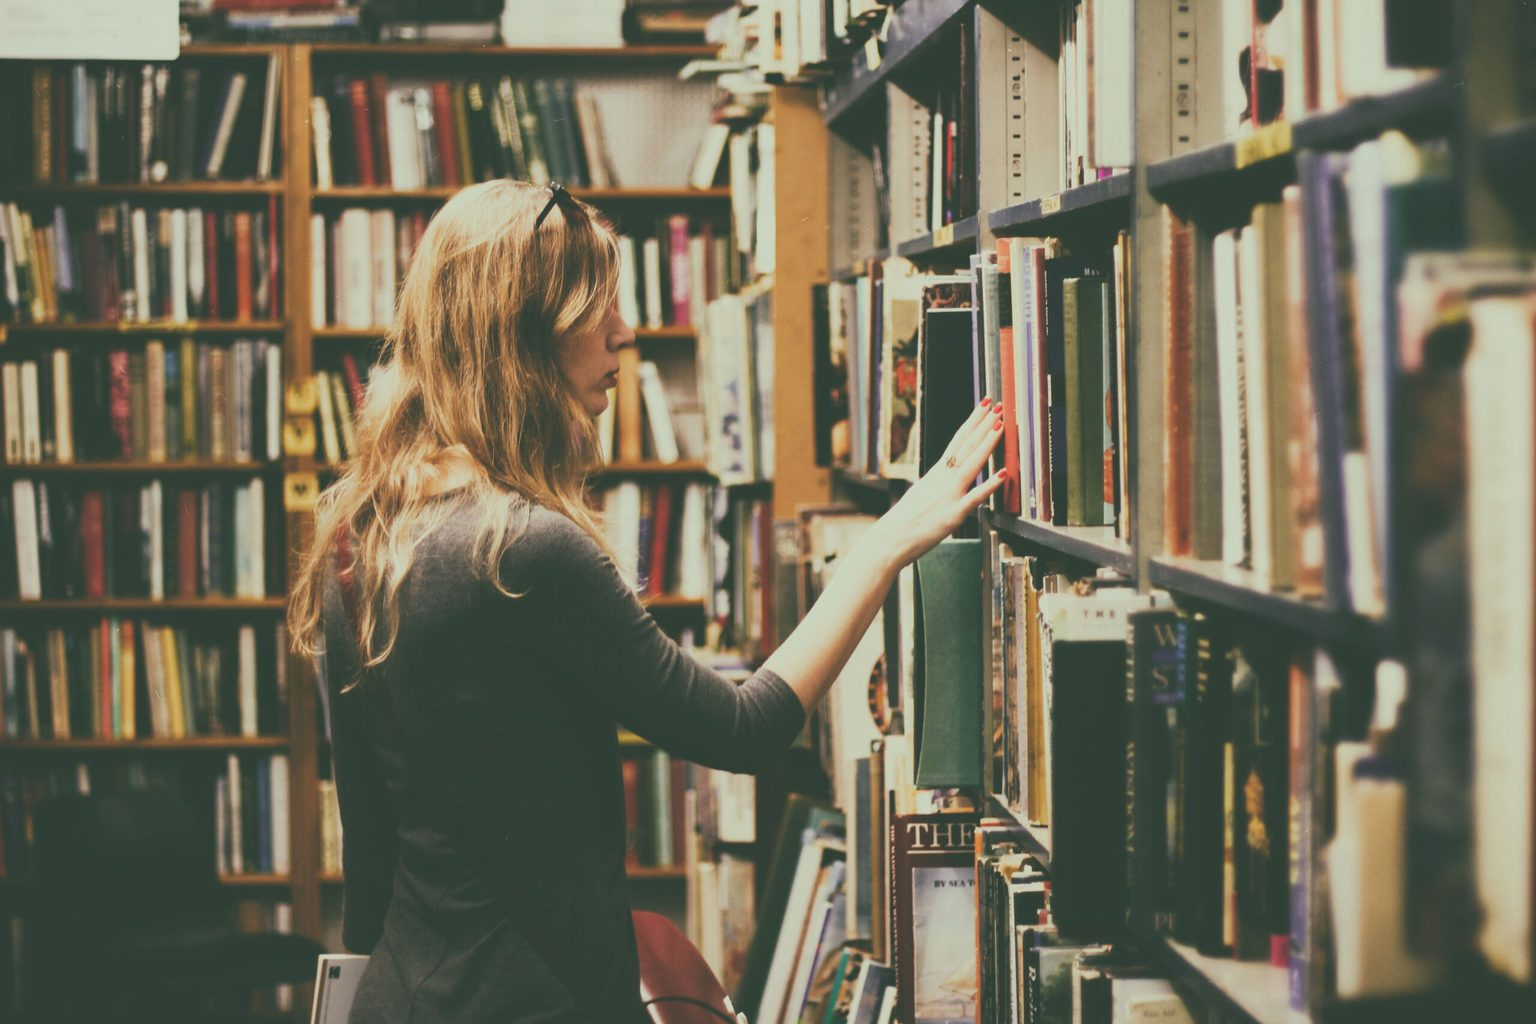 Stock photo of a girl looking through books